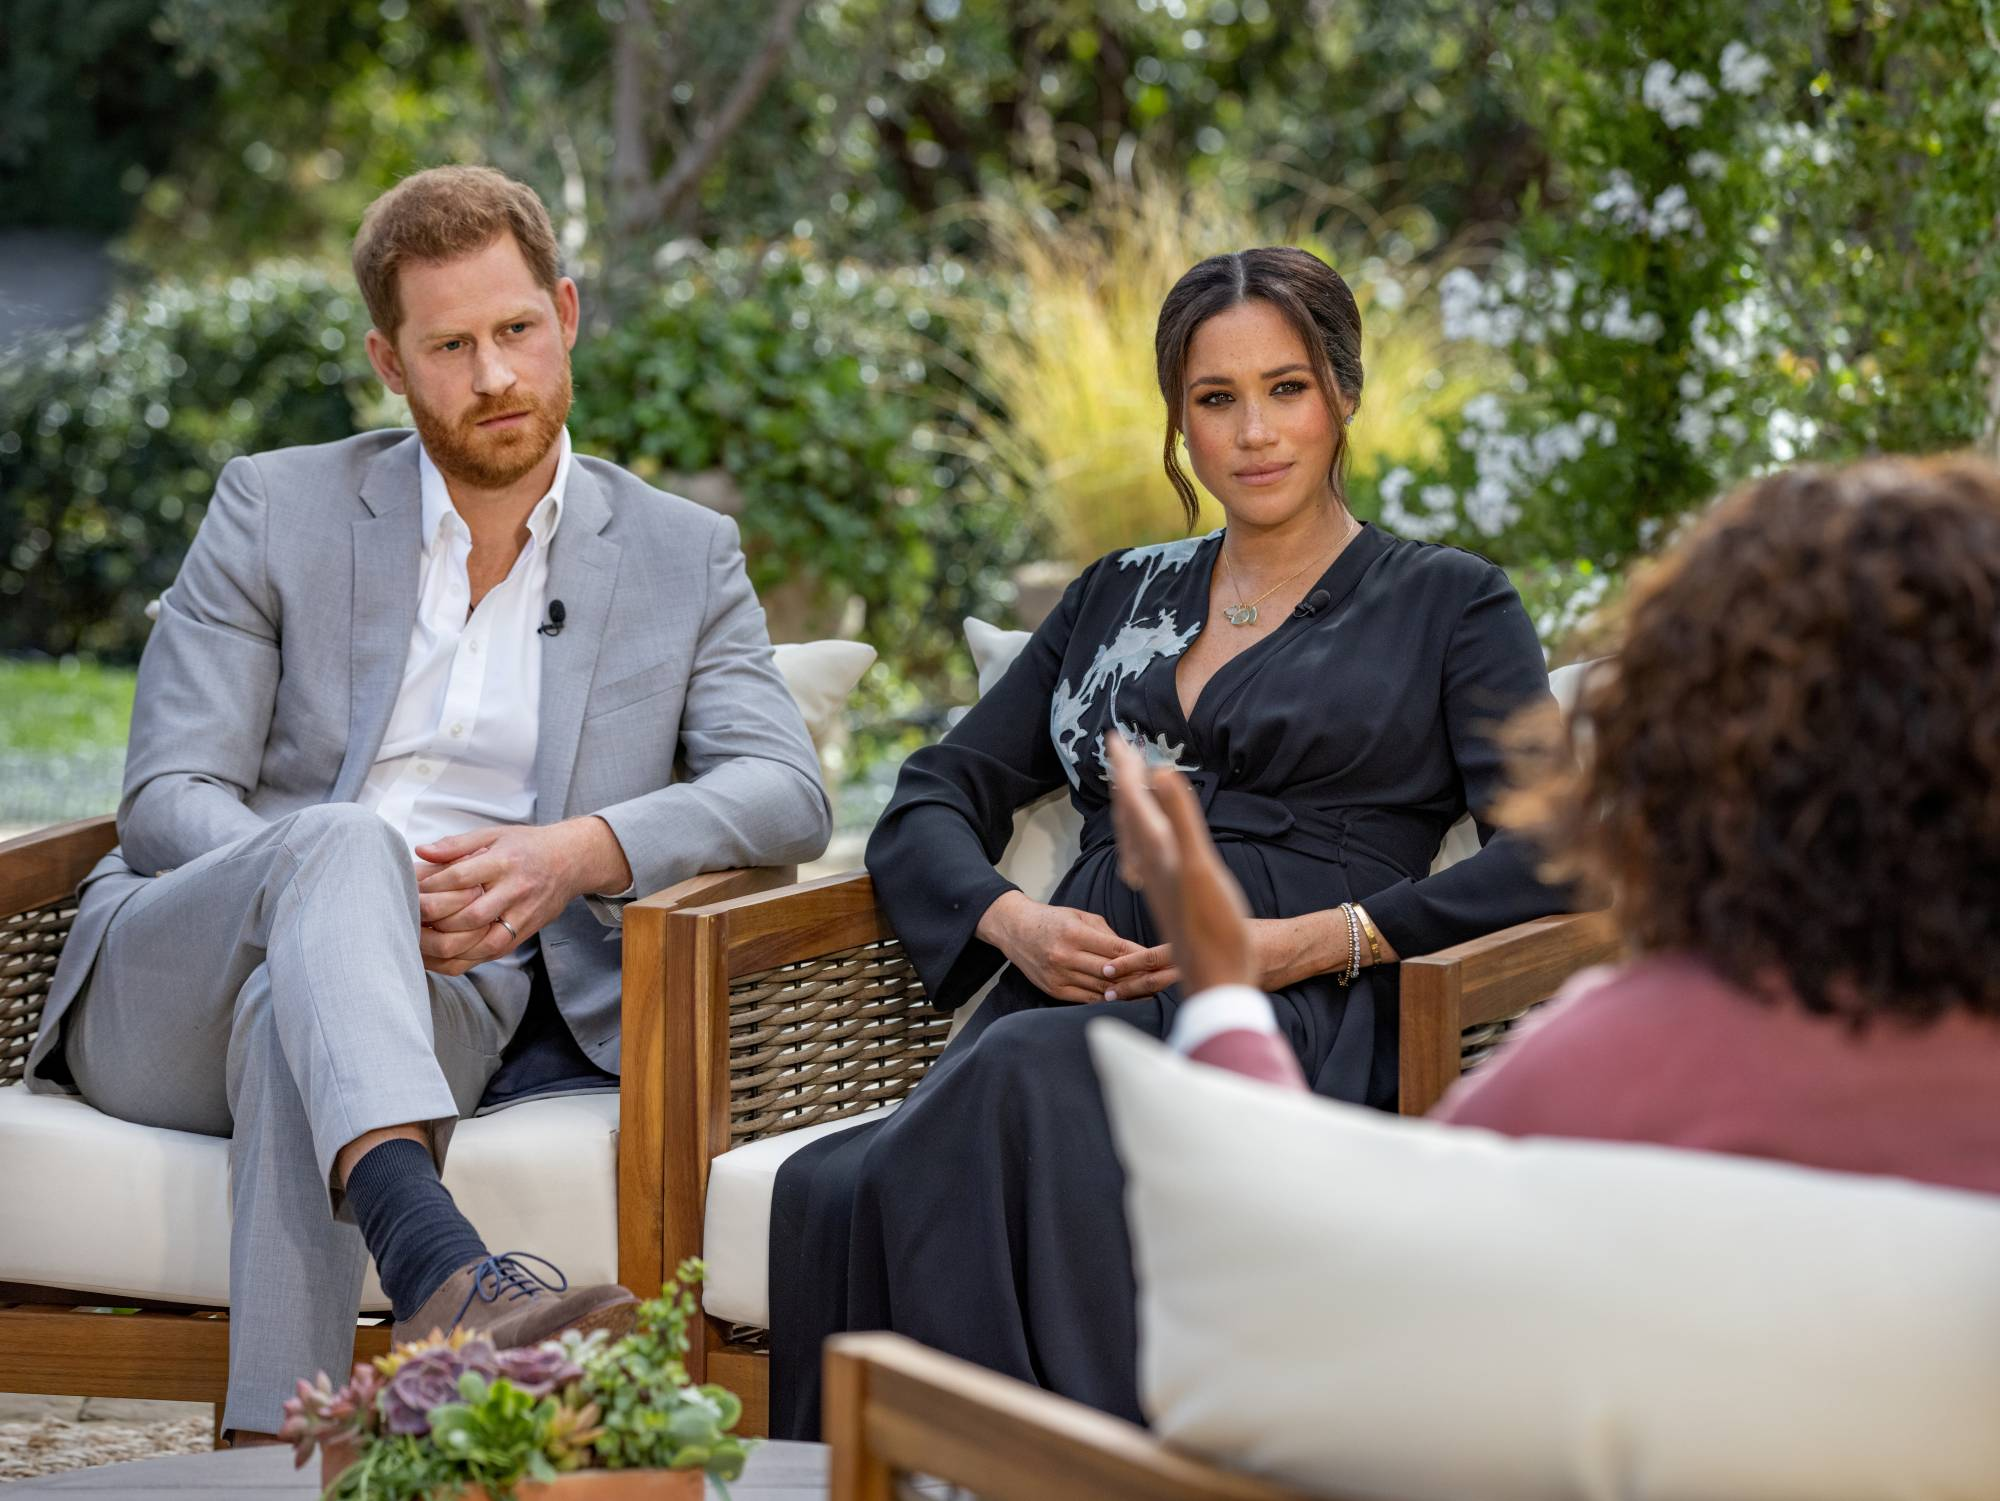 meghan-accuses-british-royal-family-of-racism-lying-and-bullying